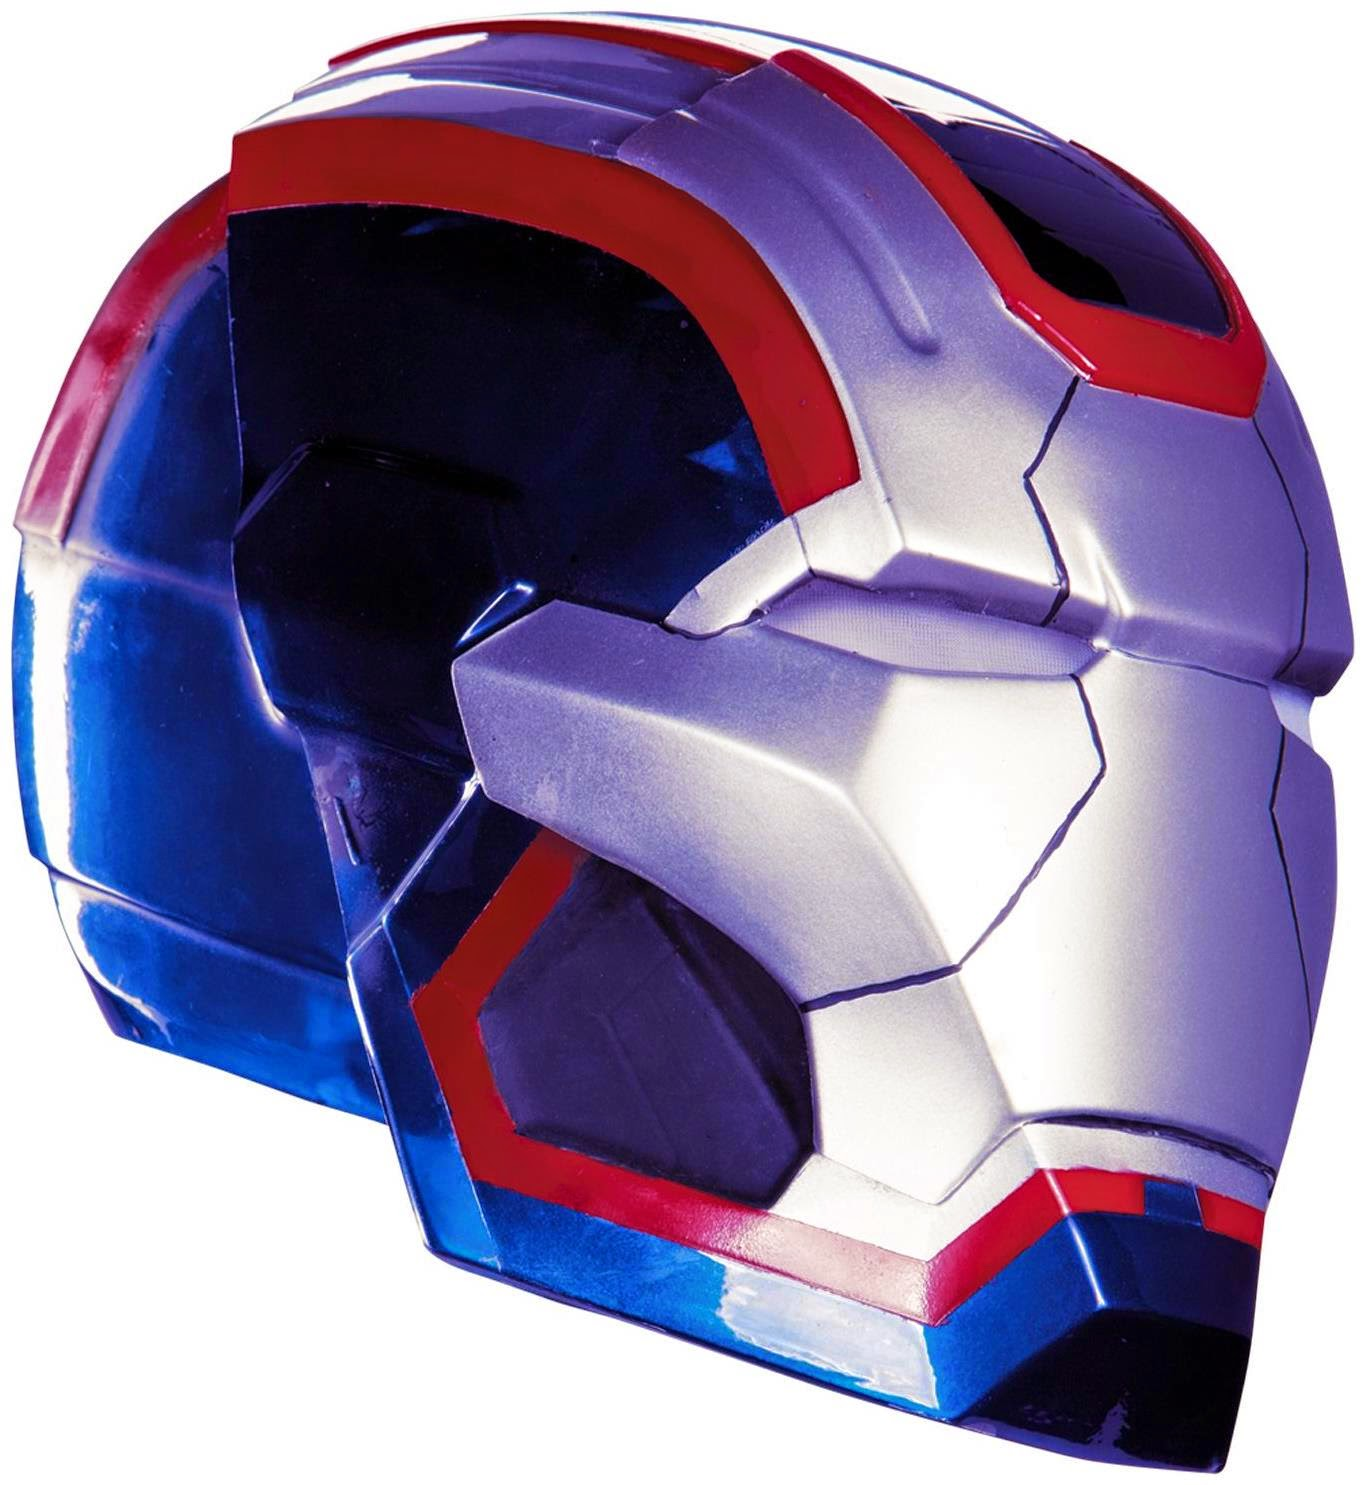 http://www.partybell.com/p-34896-iron-man-3-patriot-adult-helmet.aspx?utm_source=Blog&utm_medium=Social&utm_campaign=iron-man-theme-party-blog